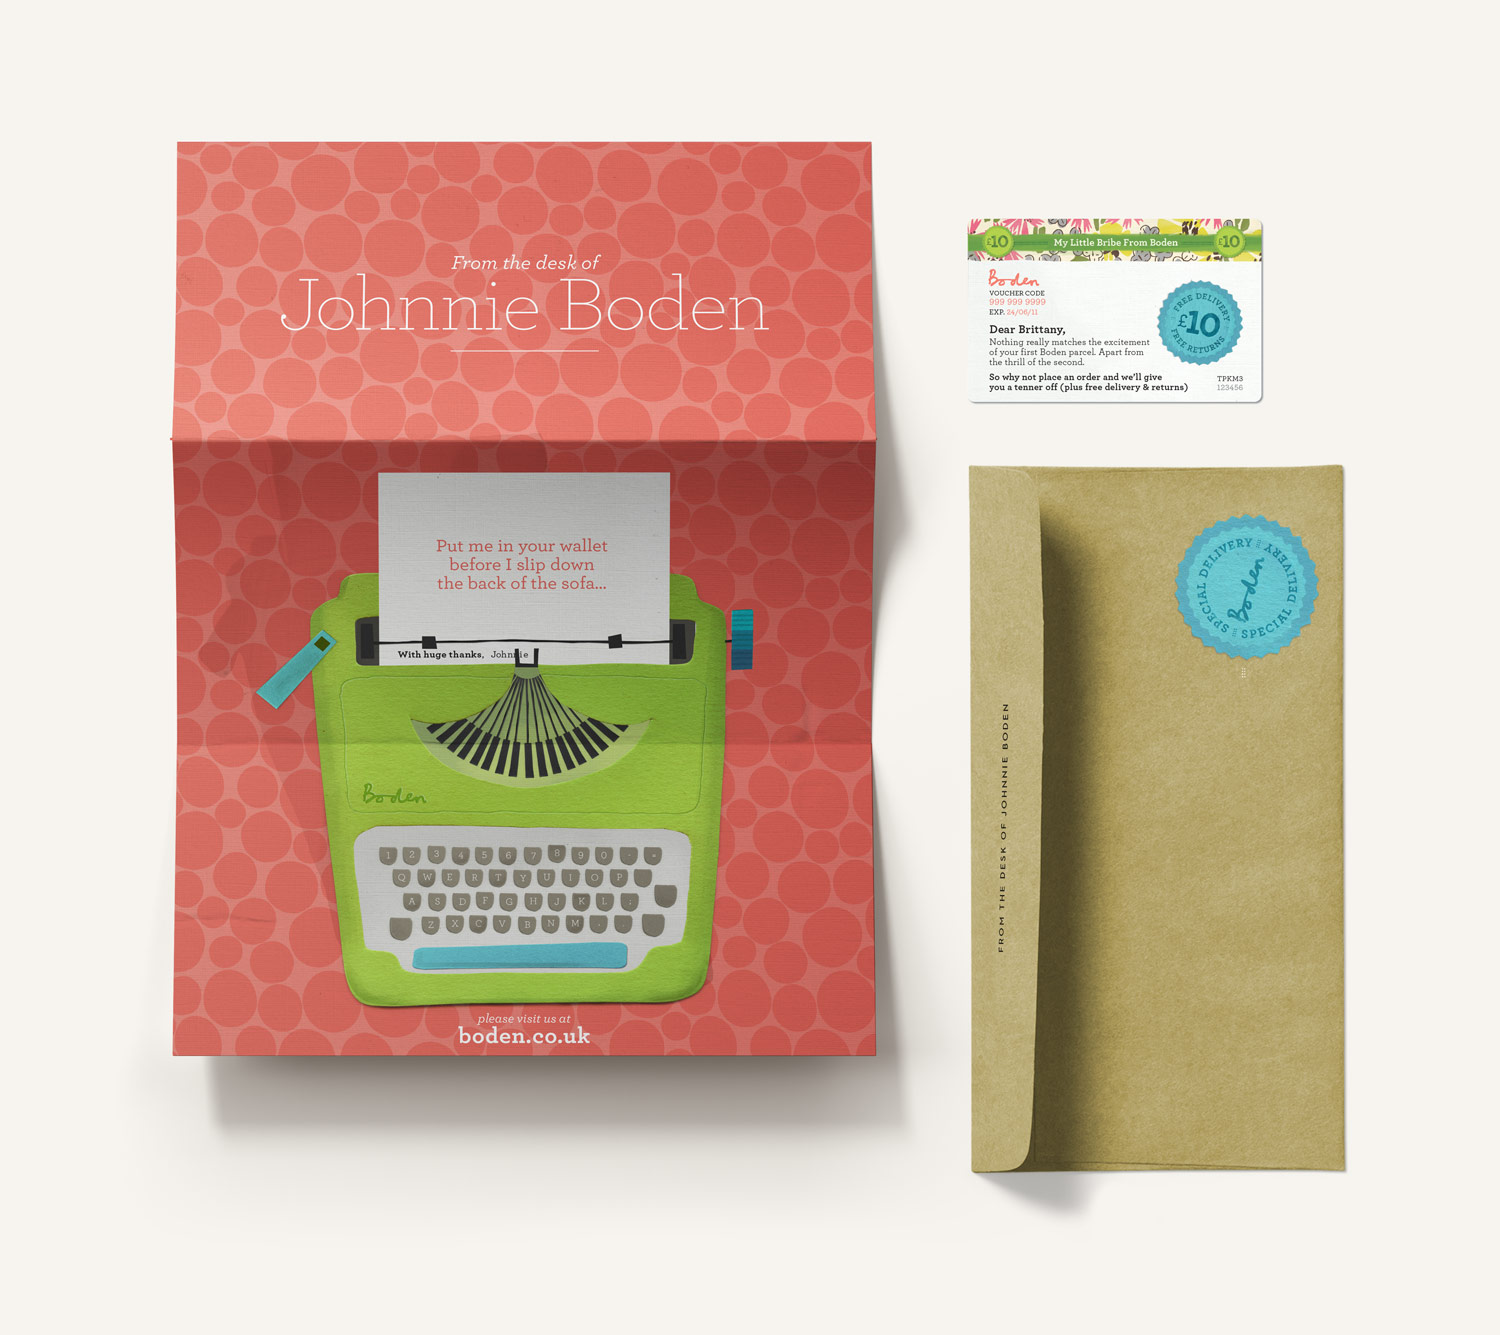 Boden quirky discount gift card letter and envelope. Paper illustration of a typewriter holding a removable gift card. Design by Brittany Hurdle